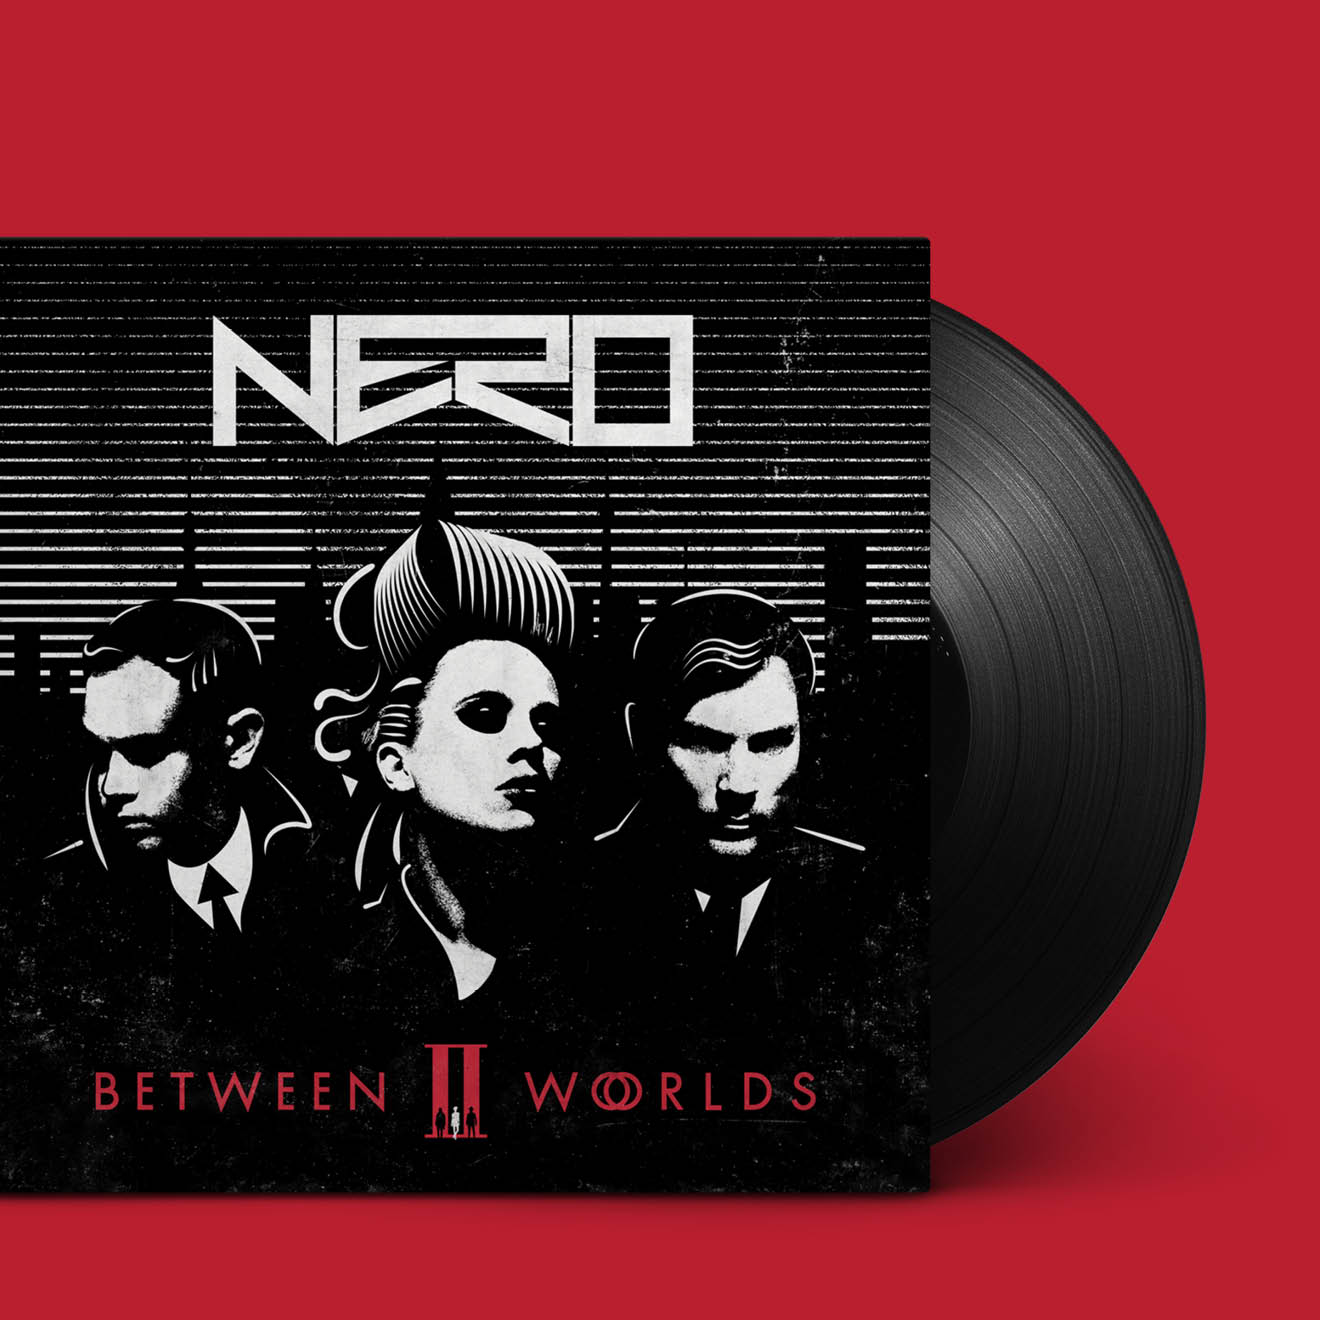 Nero: Between II Worlds album artwork designed by Human After All